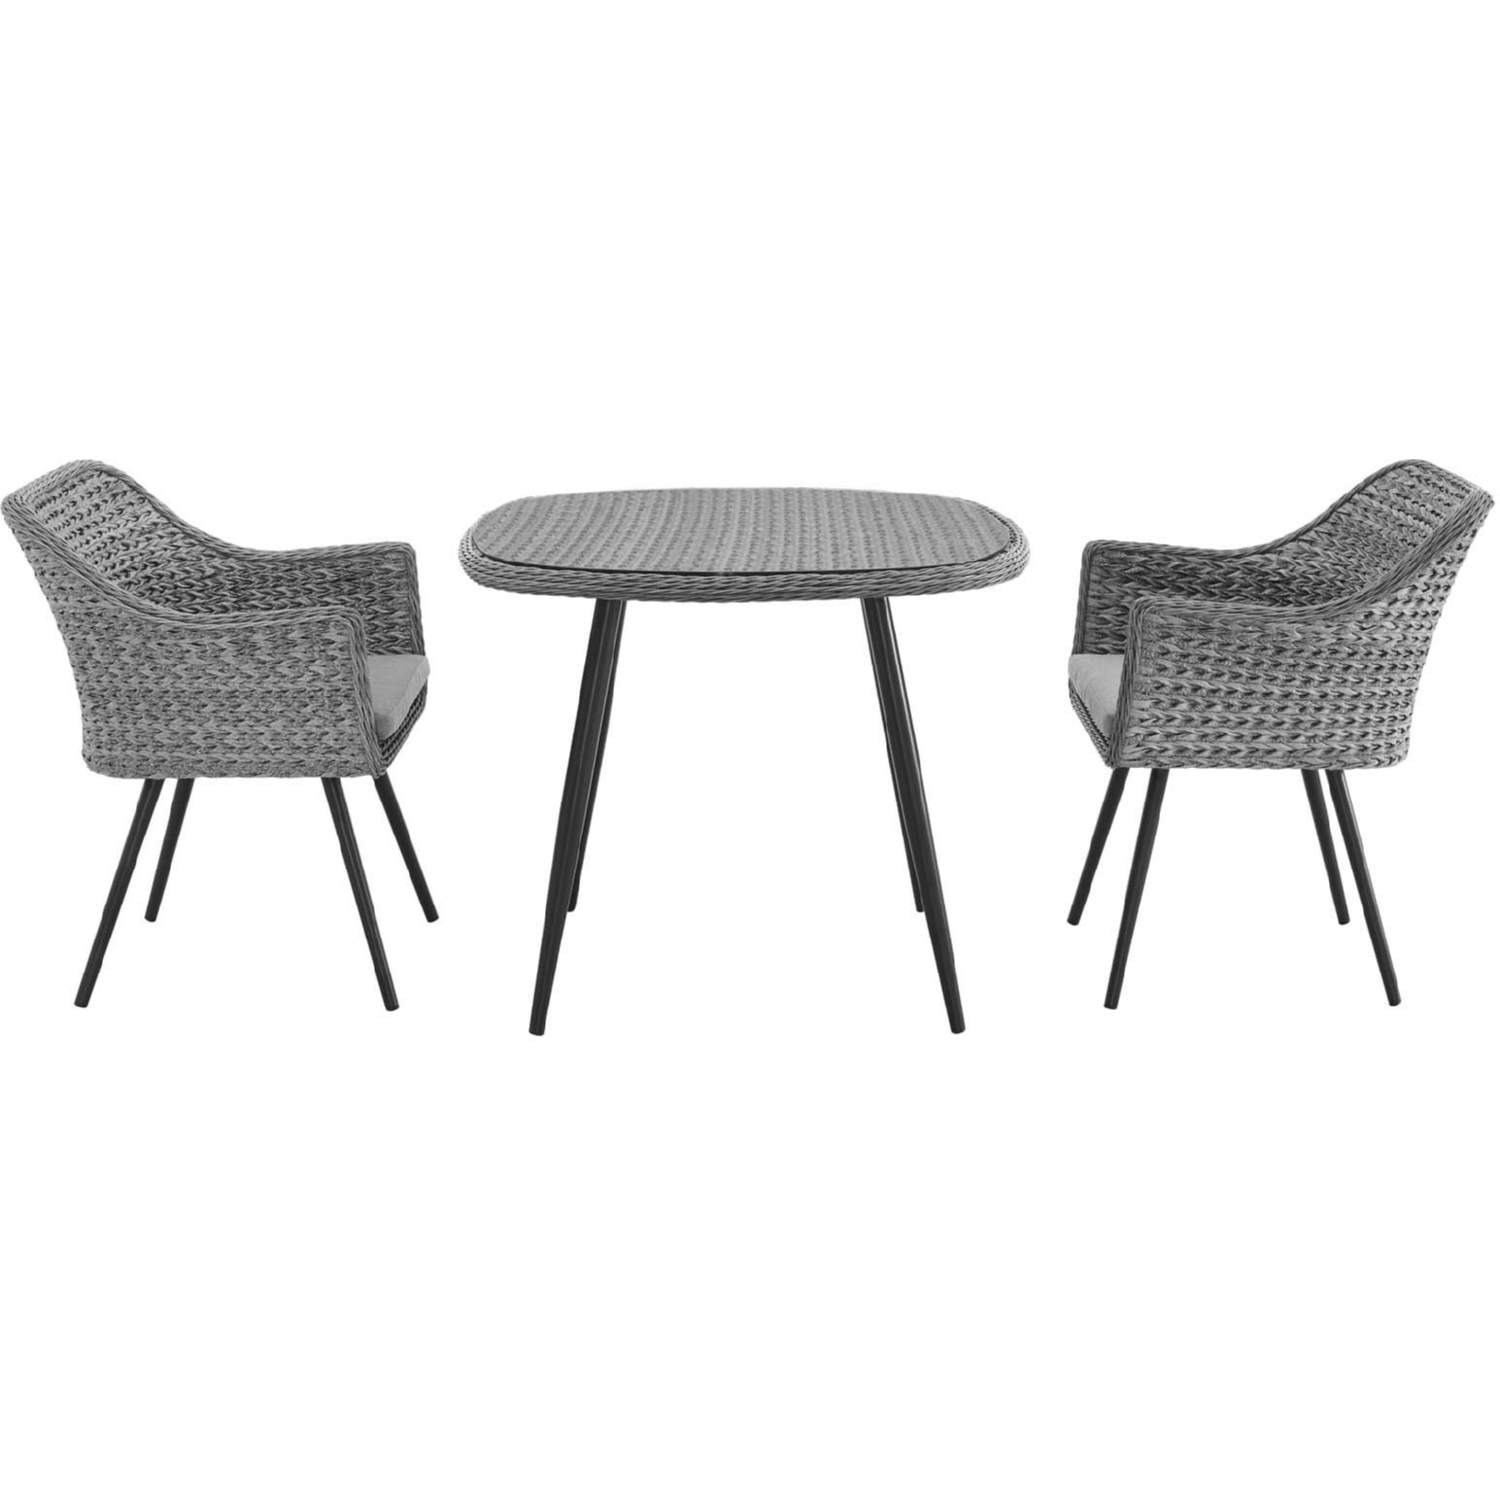 Modern 3-Piece Dining Set In Gray Rattan Weave - image-2